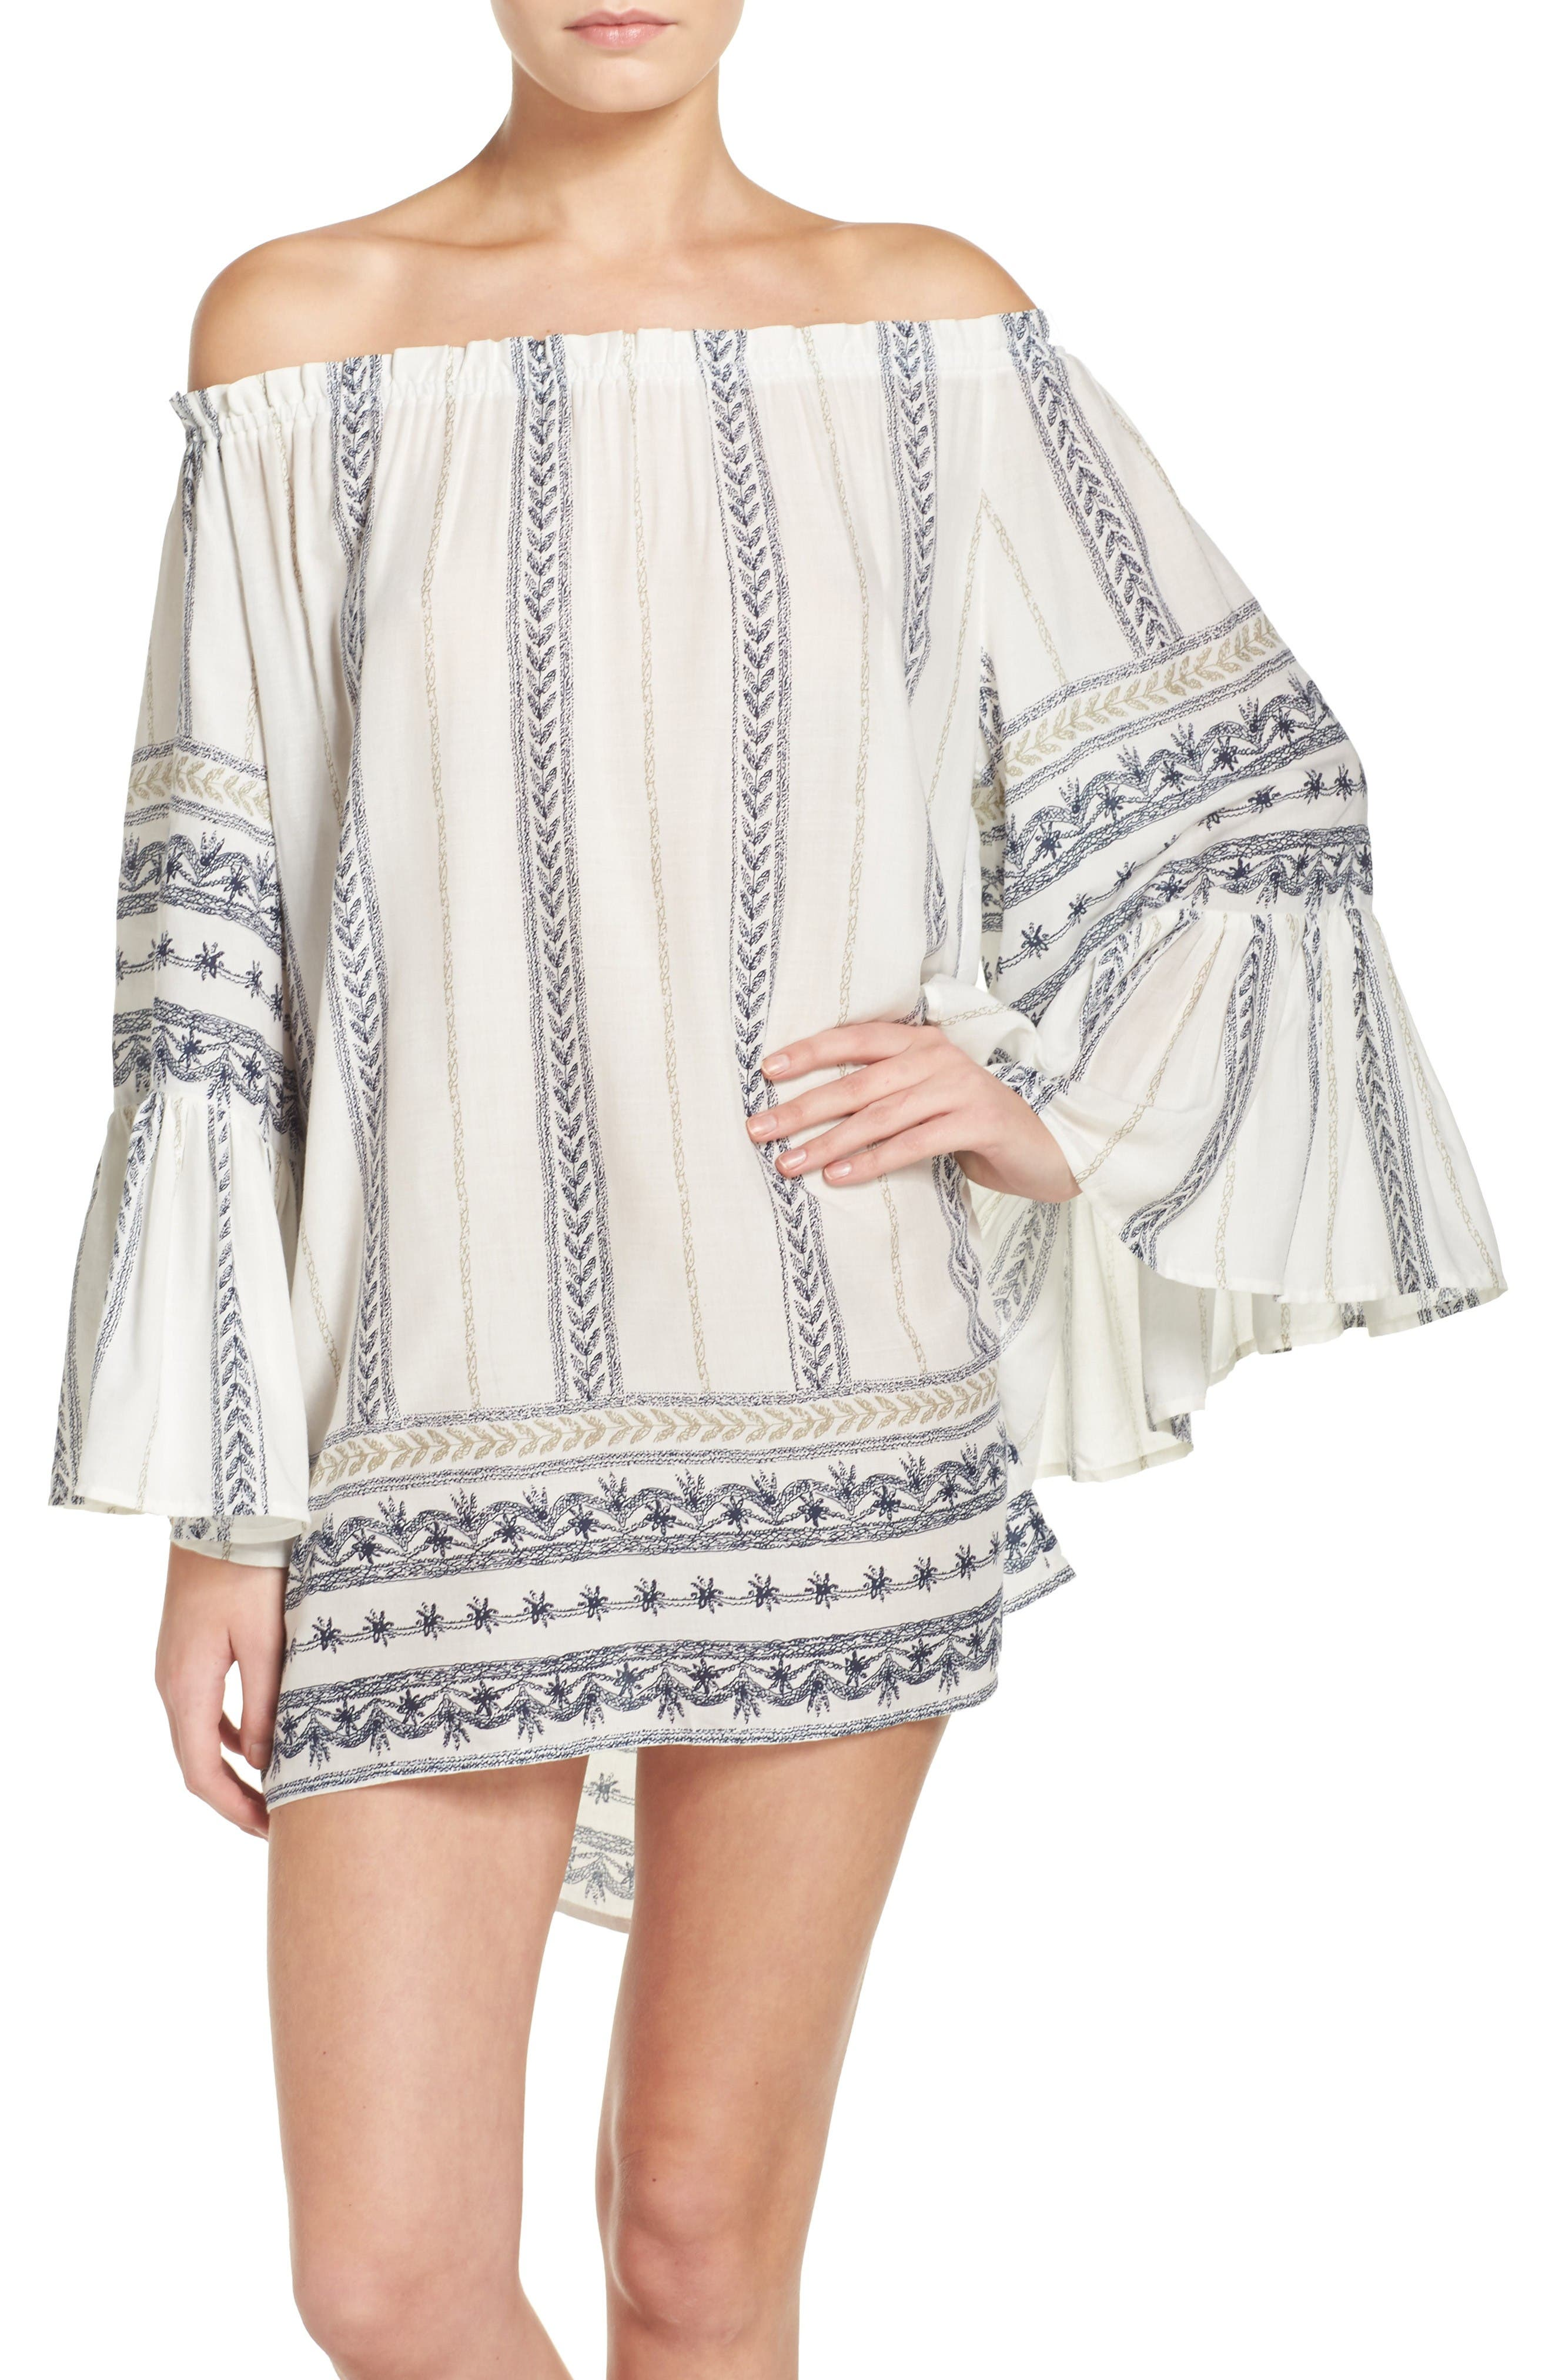 Elan Bell Sleeve Cover-Up Tunic Dress